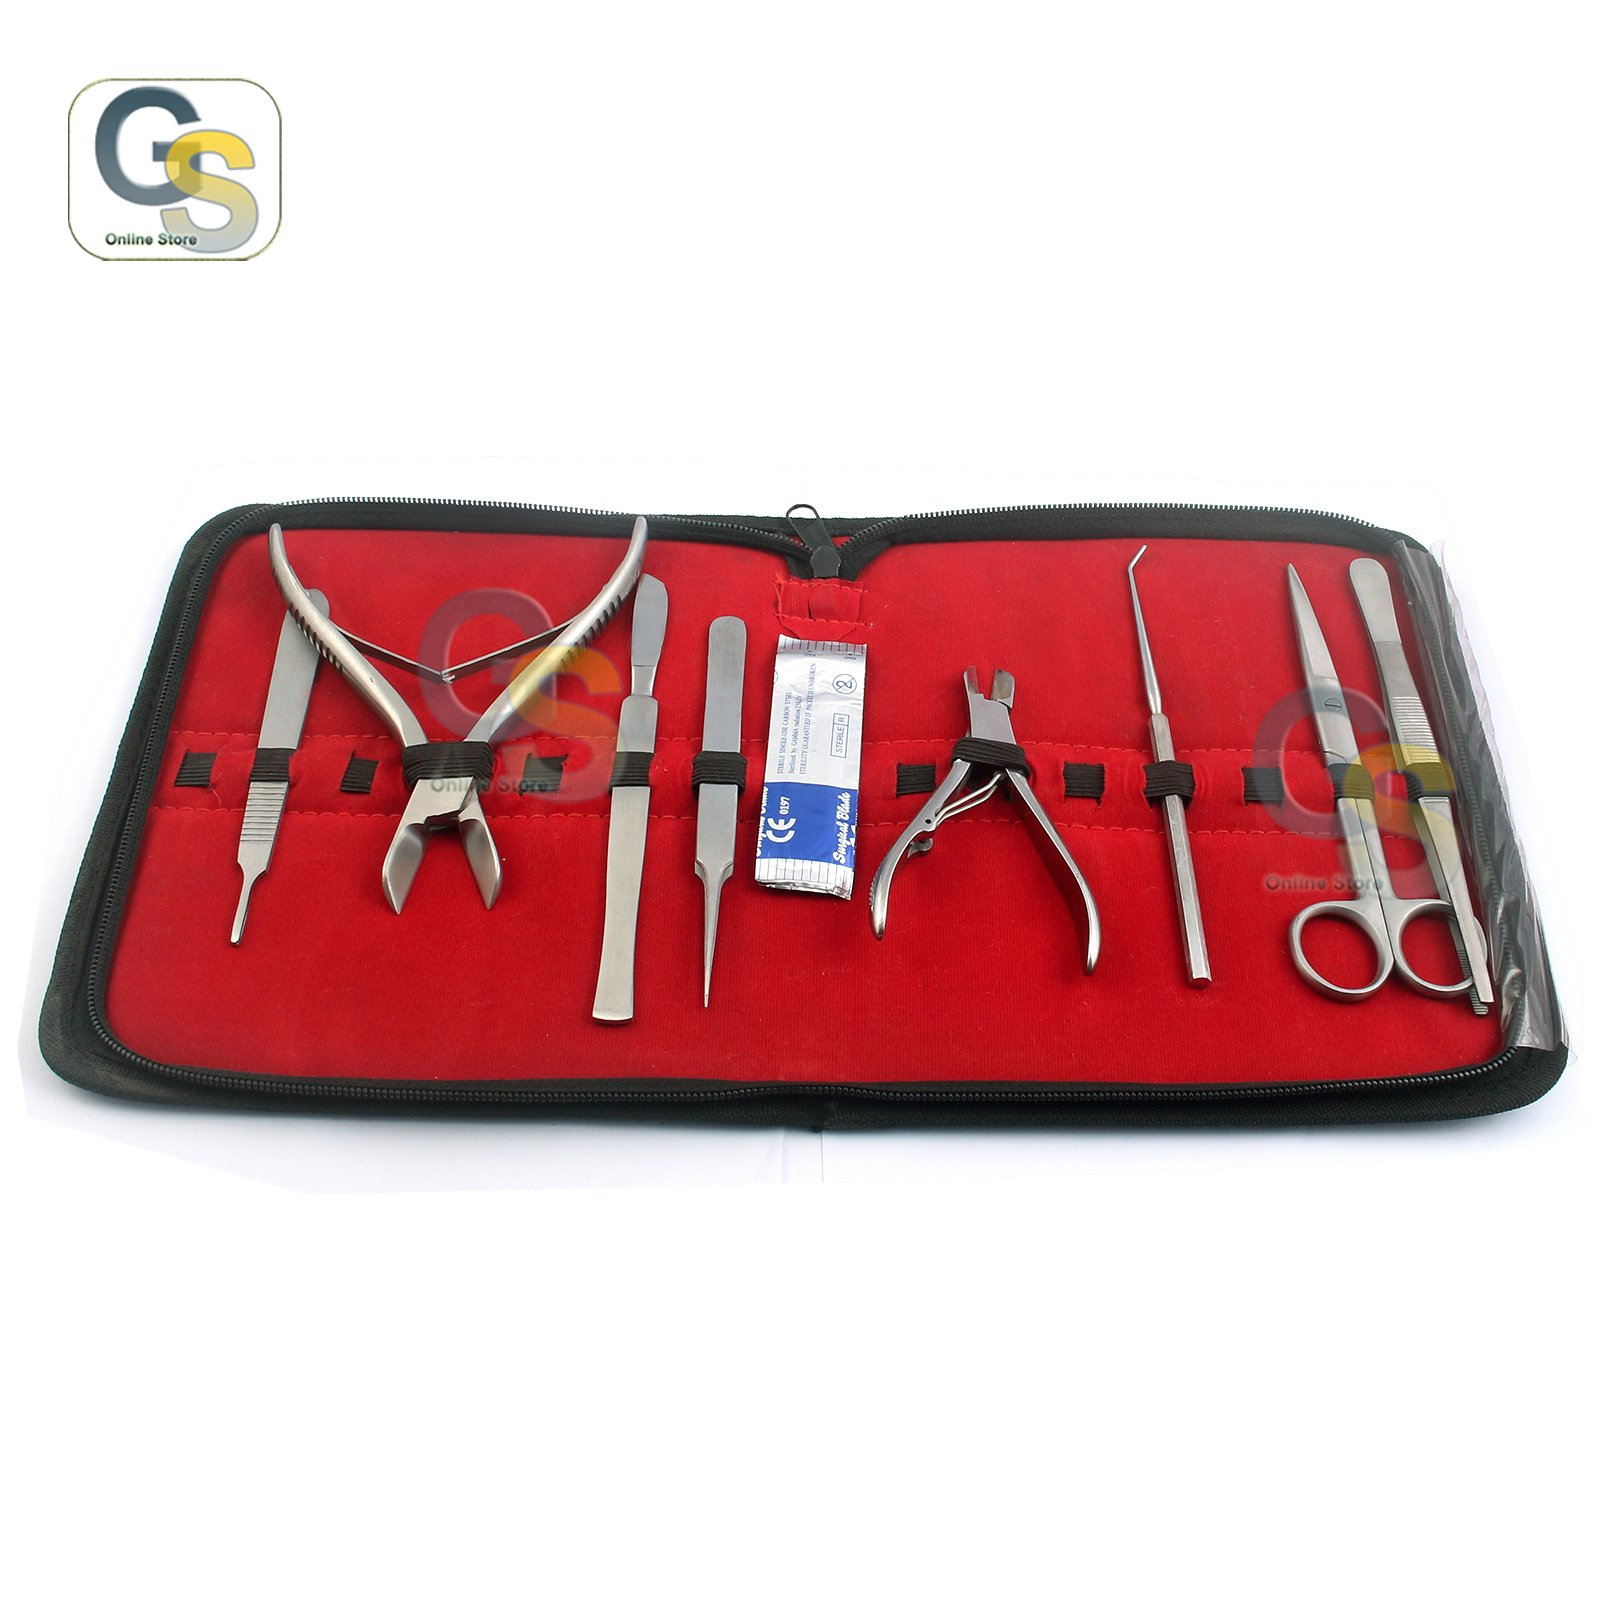 G.S Instruments Ultimate Coral FRAGGING KIT CRL-0039 Best Quality by G.S ONLINE STORE